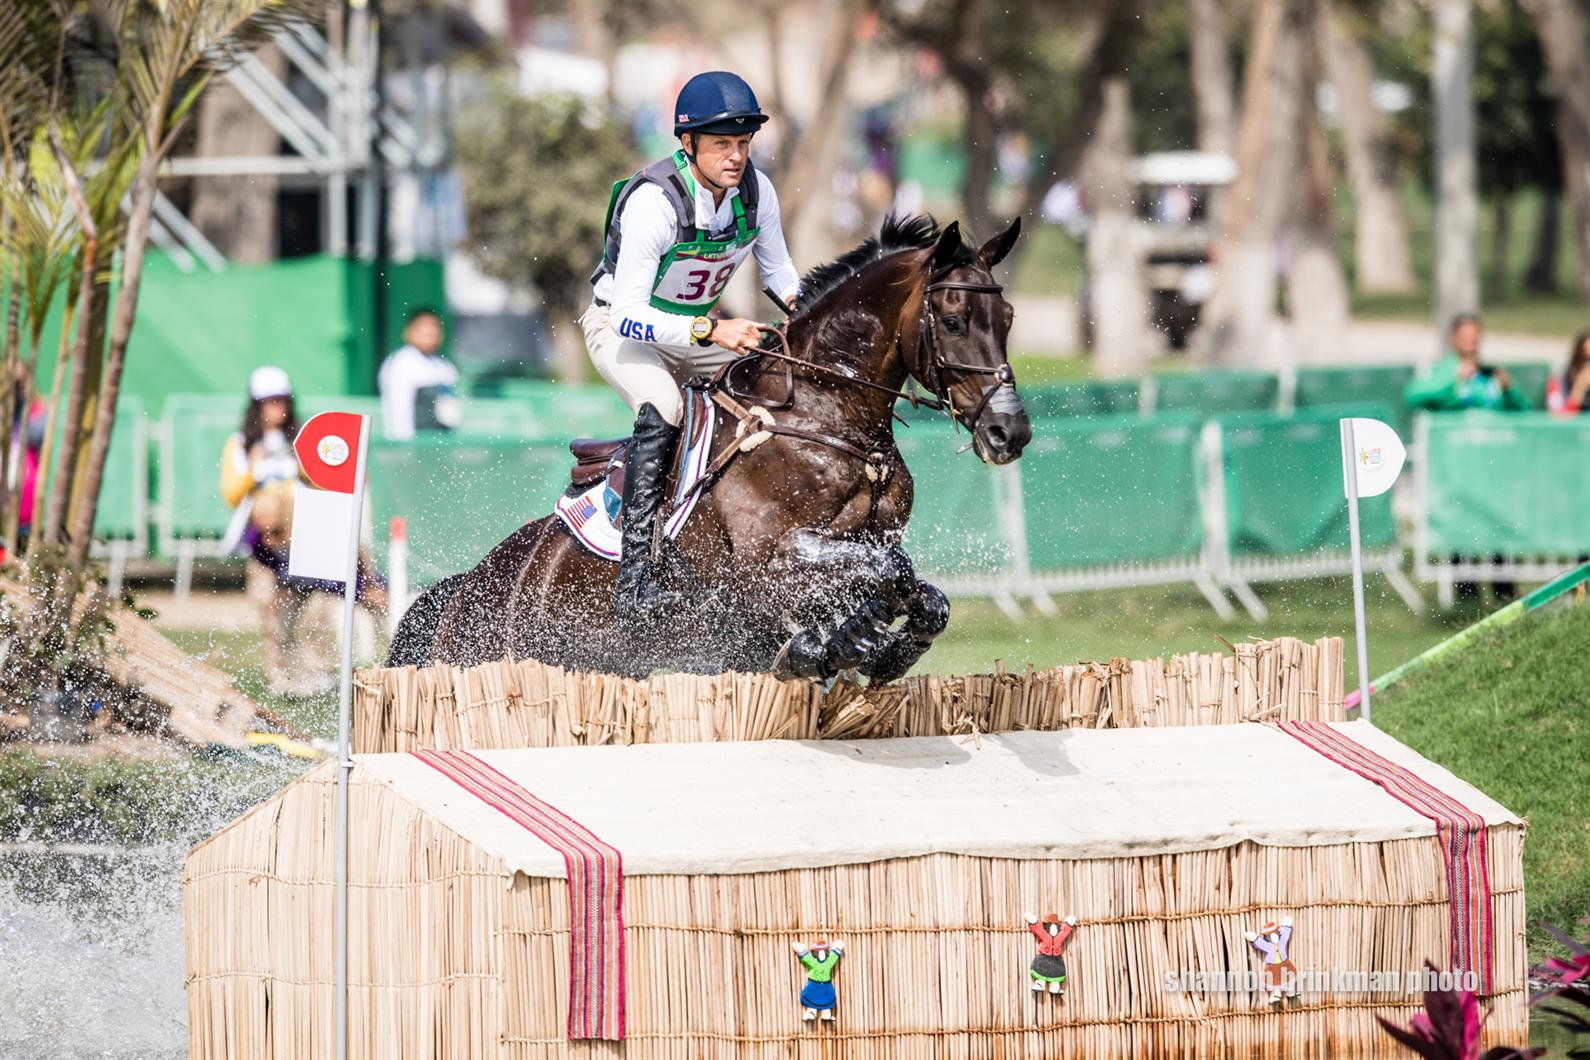 Best Backup Iron Sights 2020 U.S. Eventing Team Takes Commanding Lead After Cross Country With